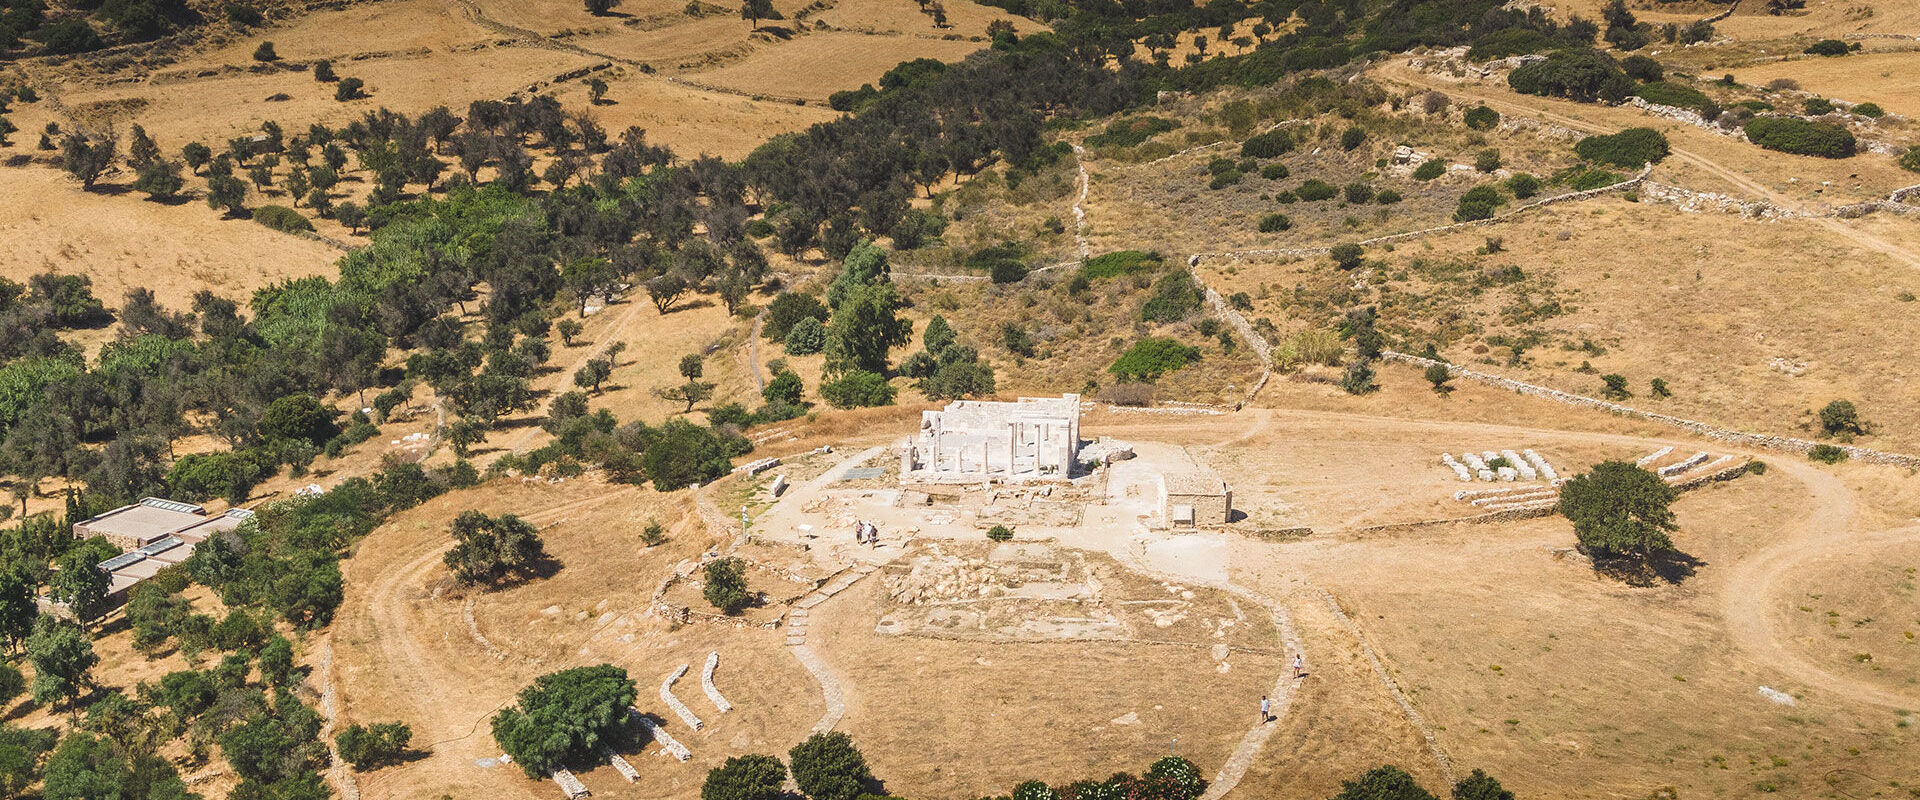 It's worth including a visit to the Temple of Demeter with a day's village-hopping in Naxos